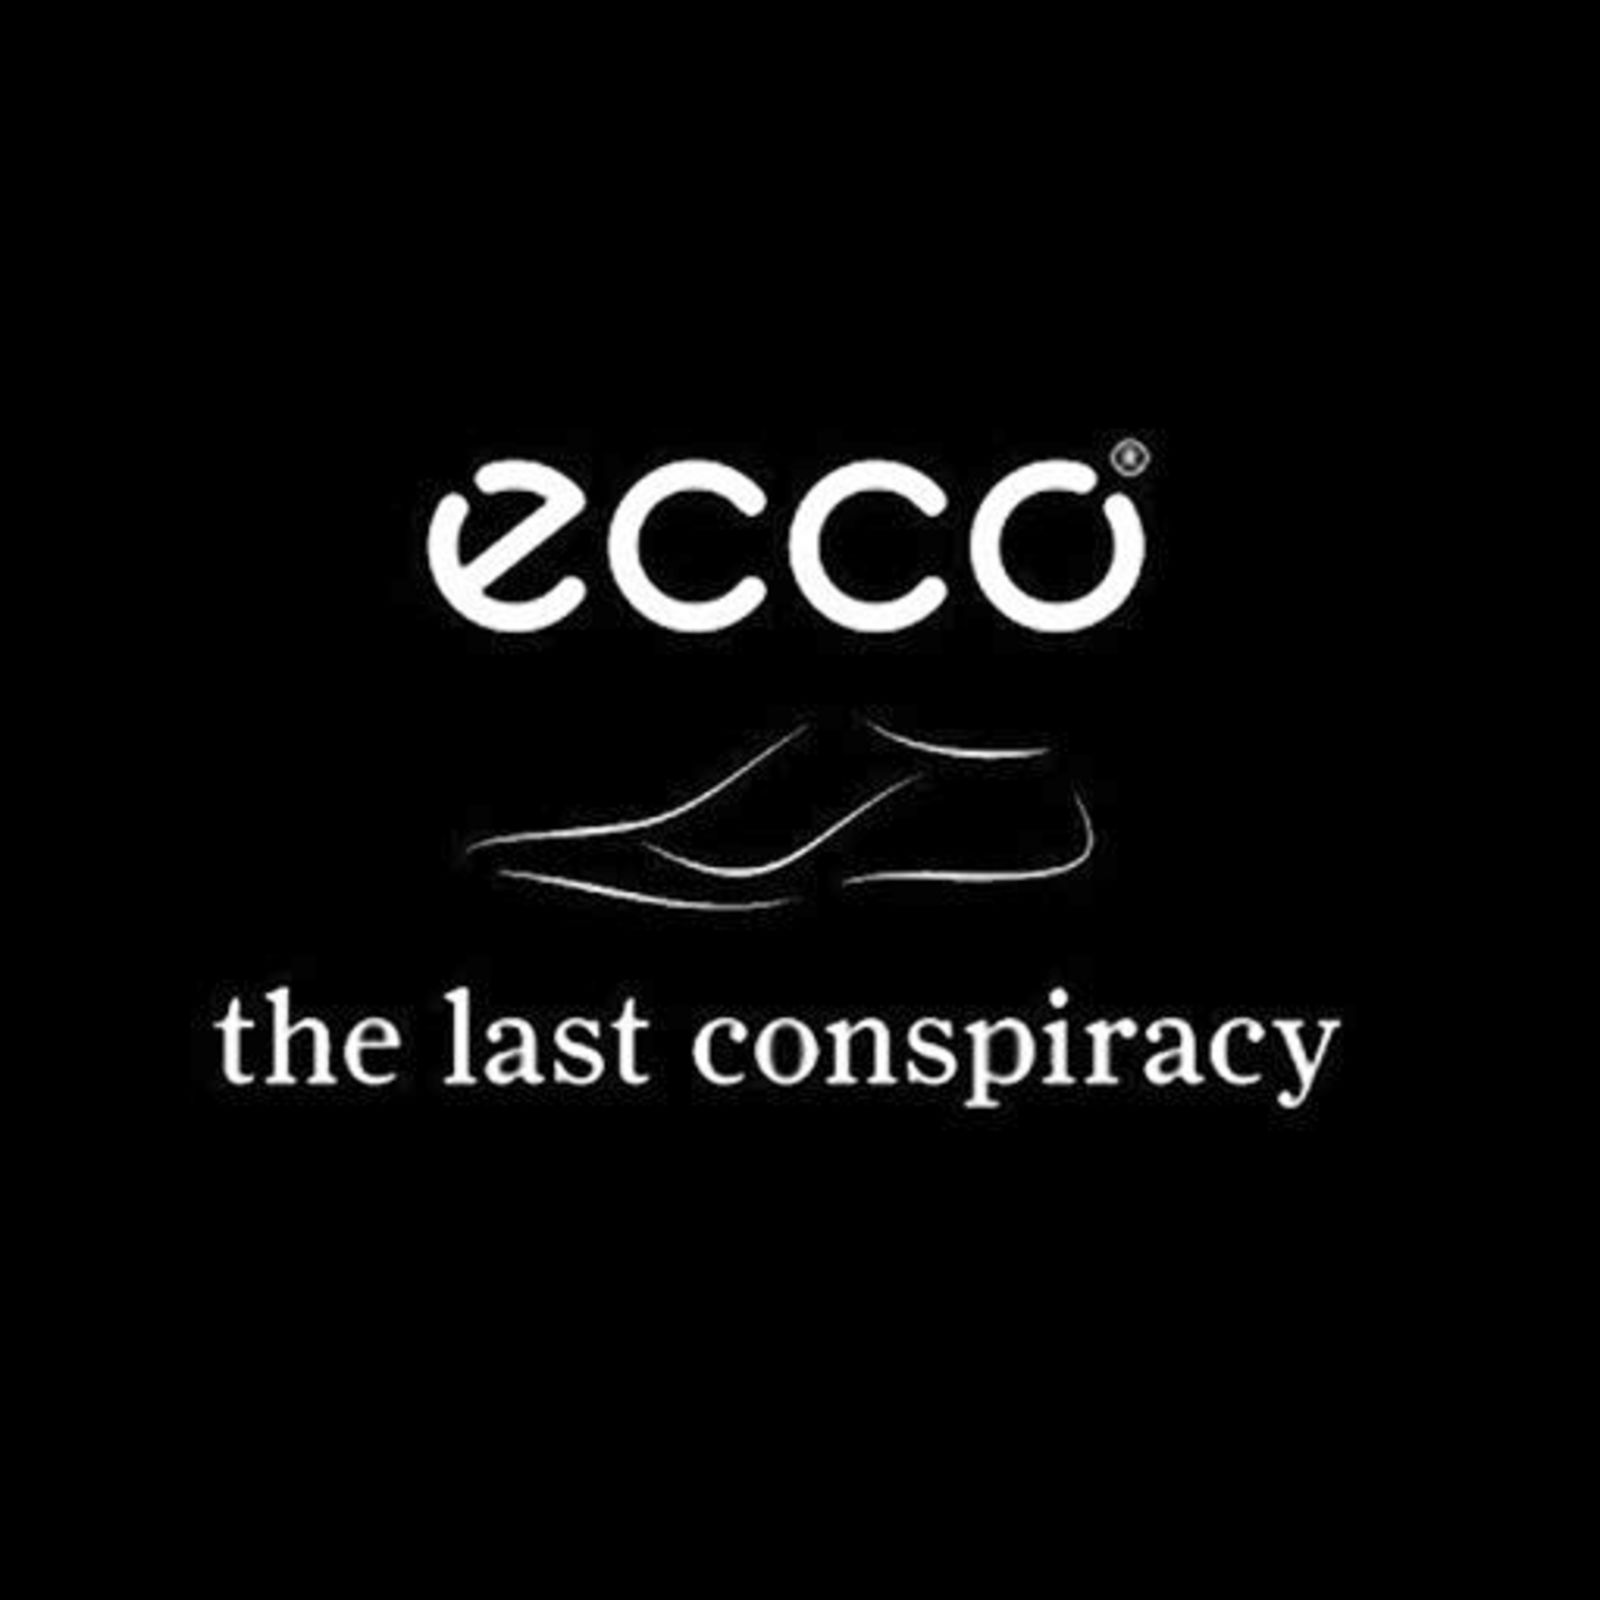 ecco x the last conspiracy